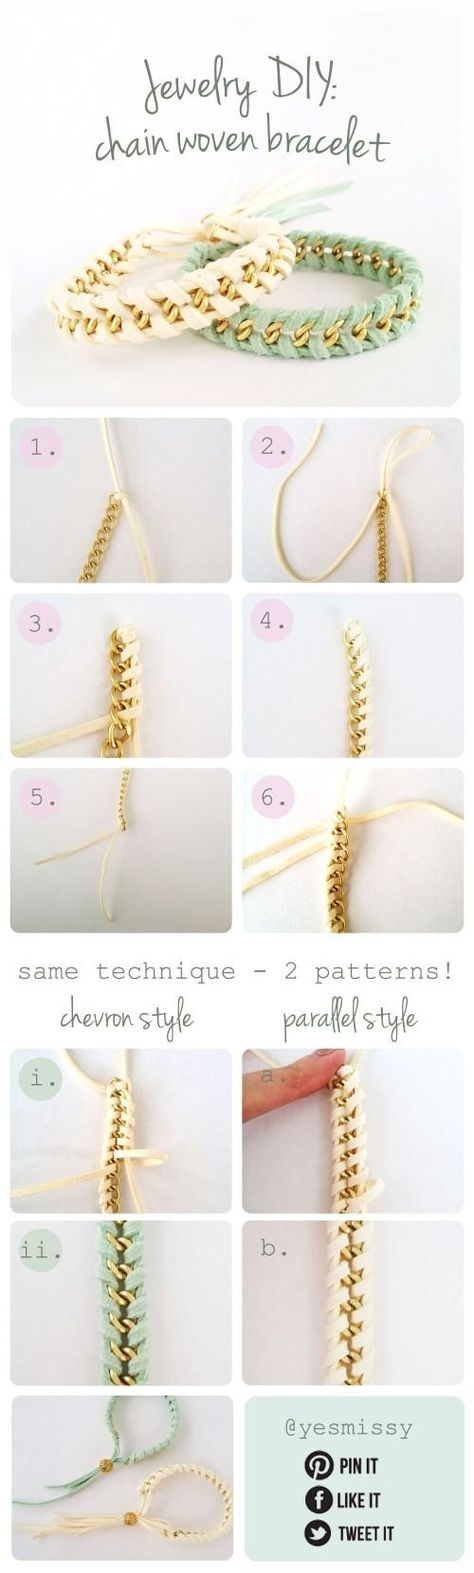 Jewelry DIY: Suede  Chain Woven Bracelet (Part 3)